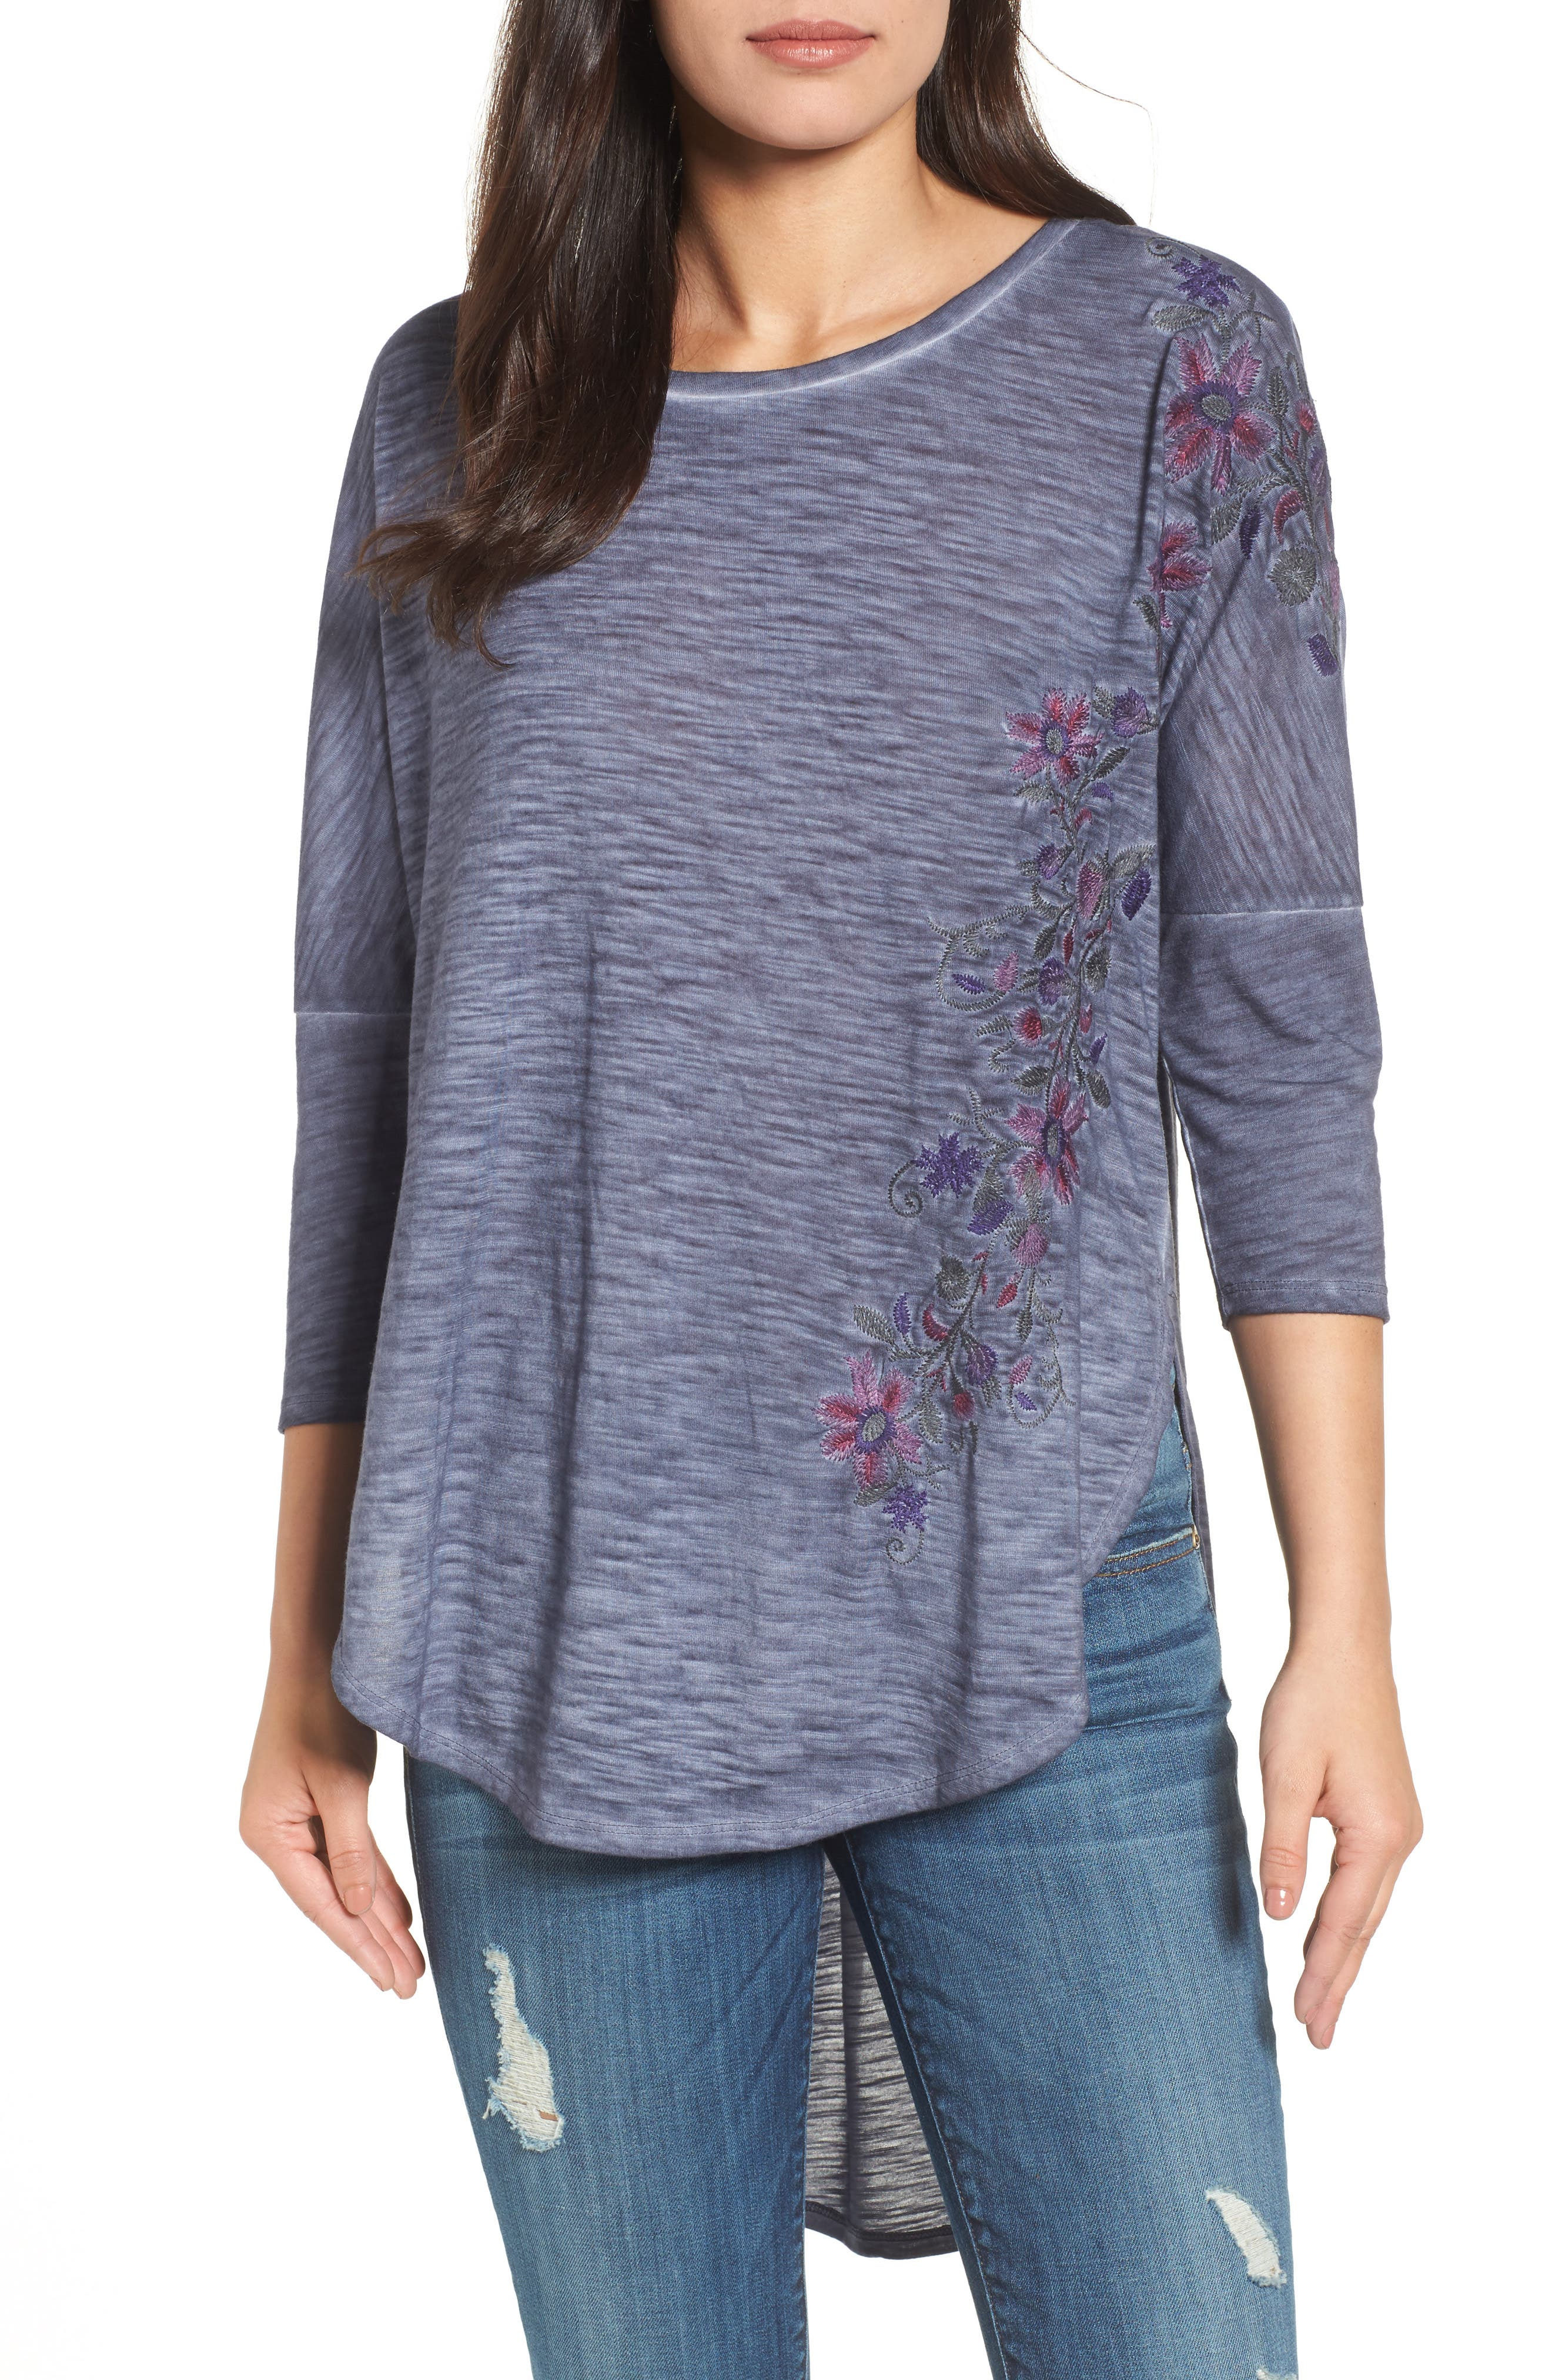 Billy T Embroidered Slub Knit Top